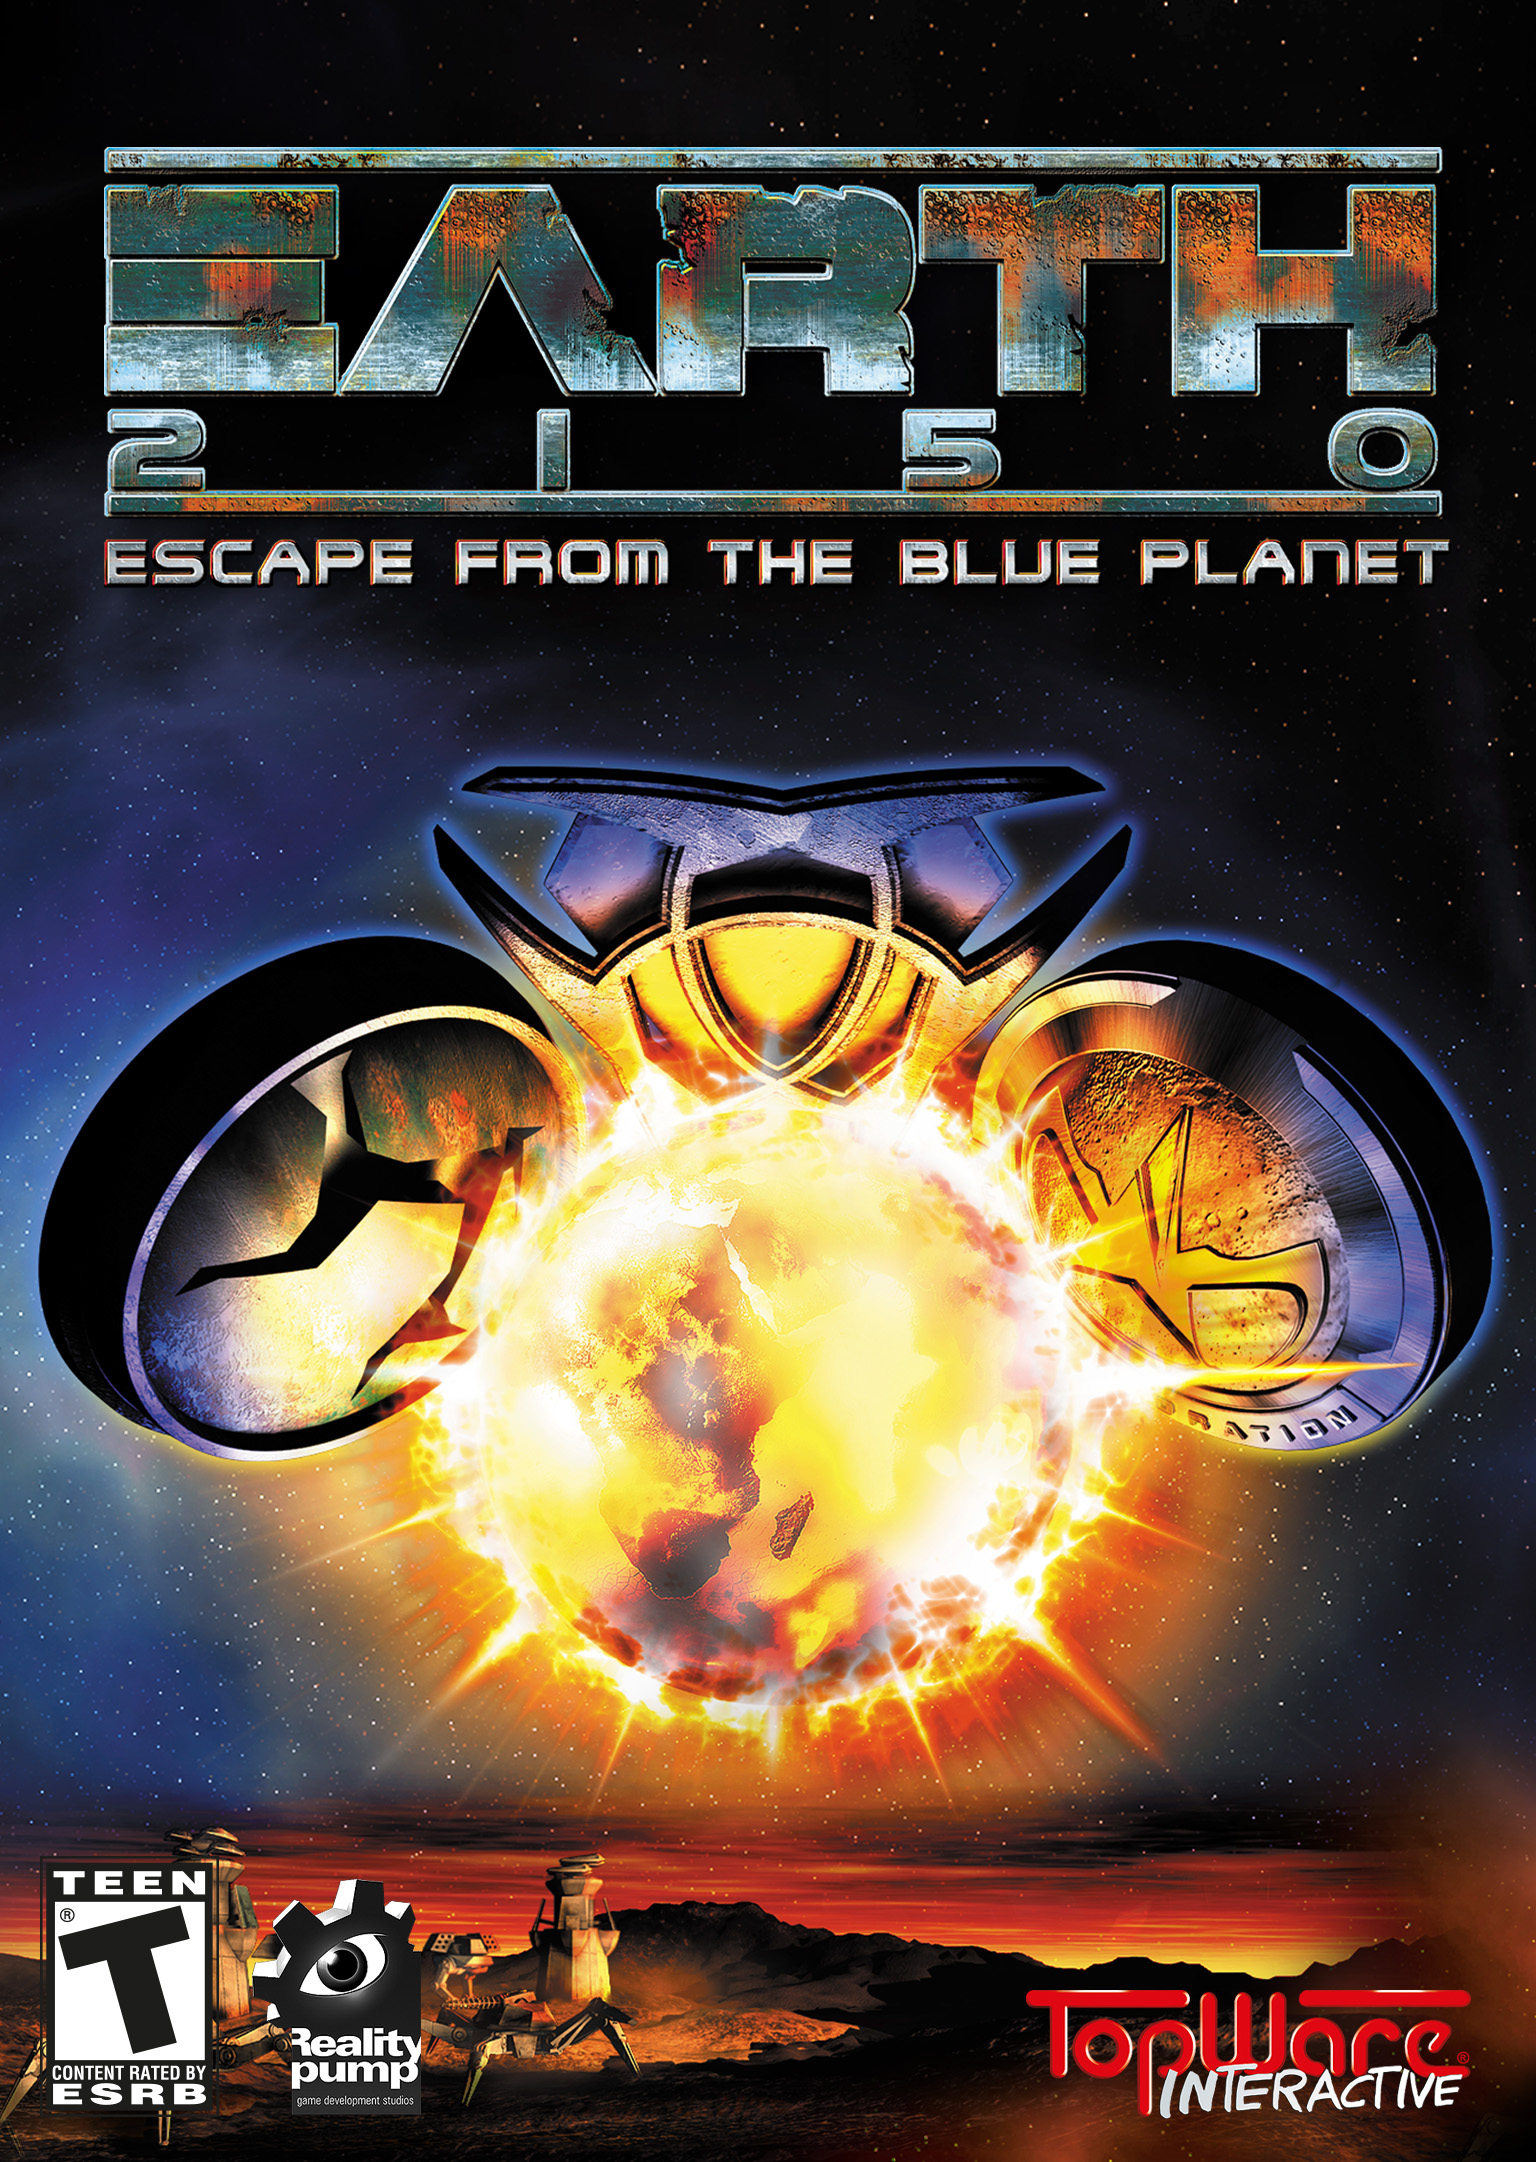 Tiberian Sun Pc Games - EARTH 2150 - Escape from the Blue Planet [Steam]